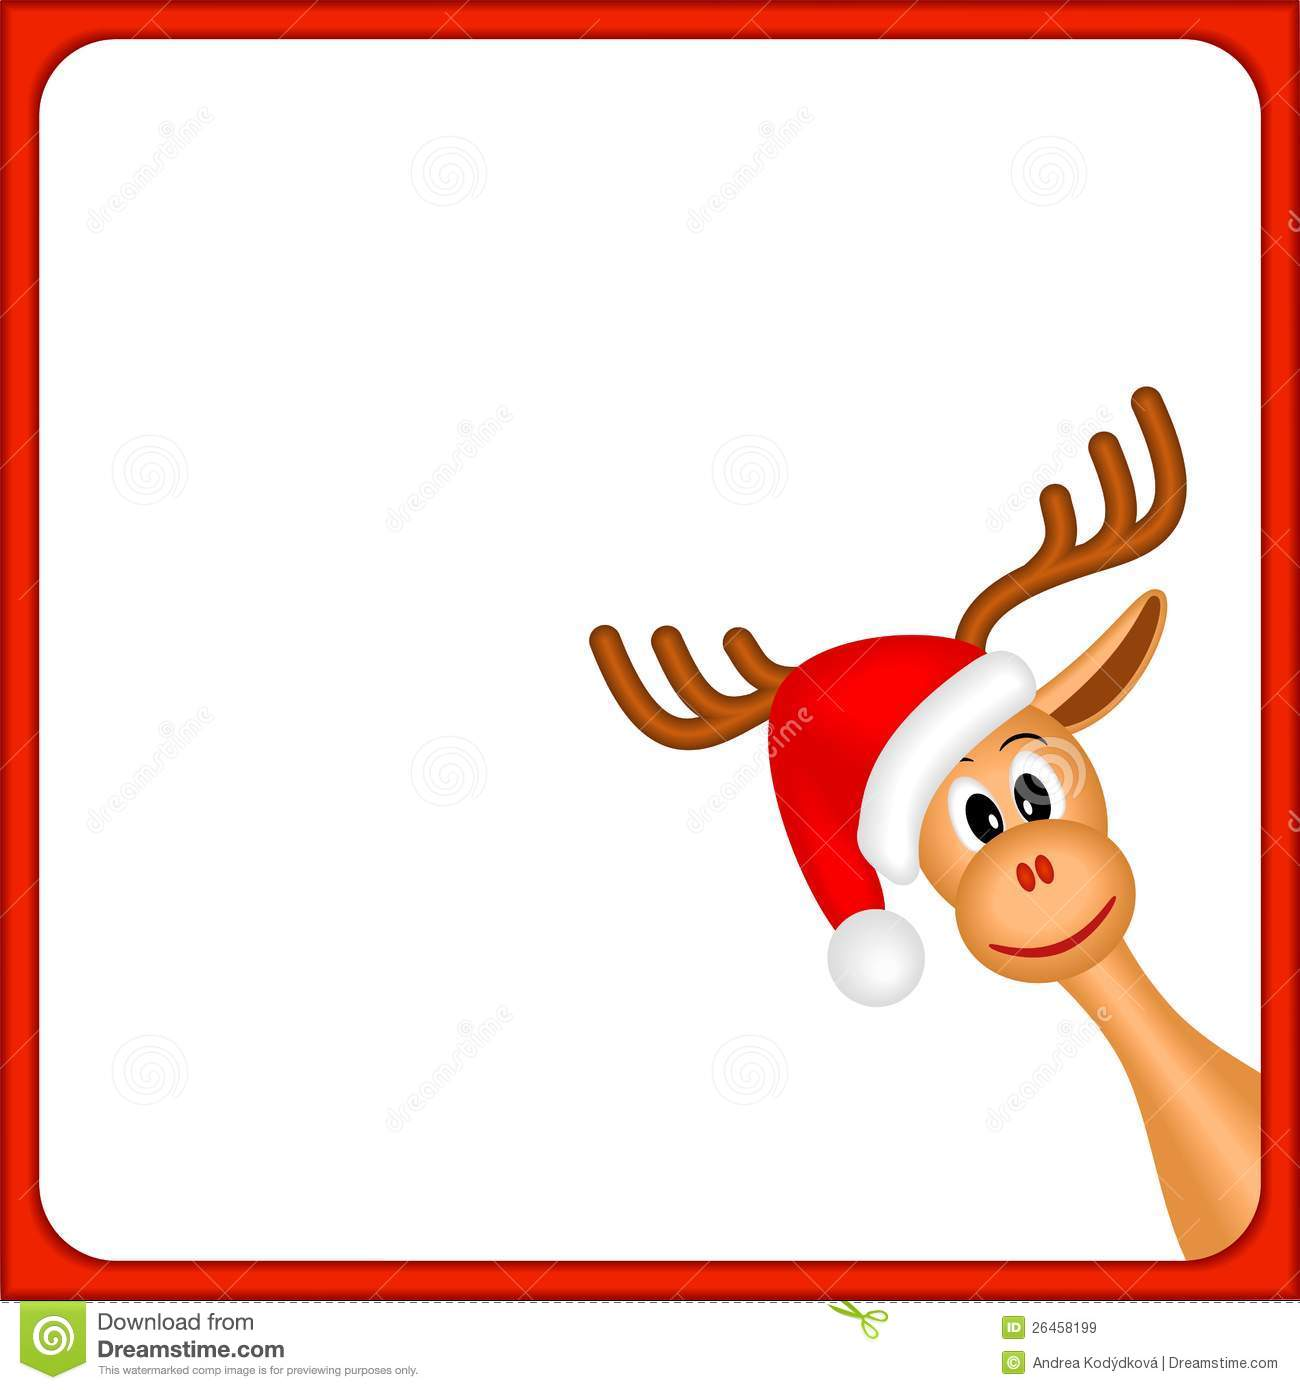 Christmas reindeer in empty frame with red border and white background ...